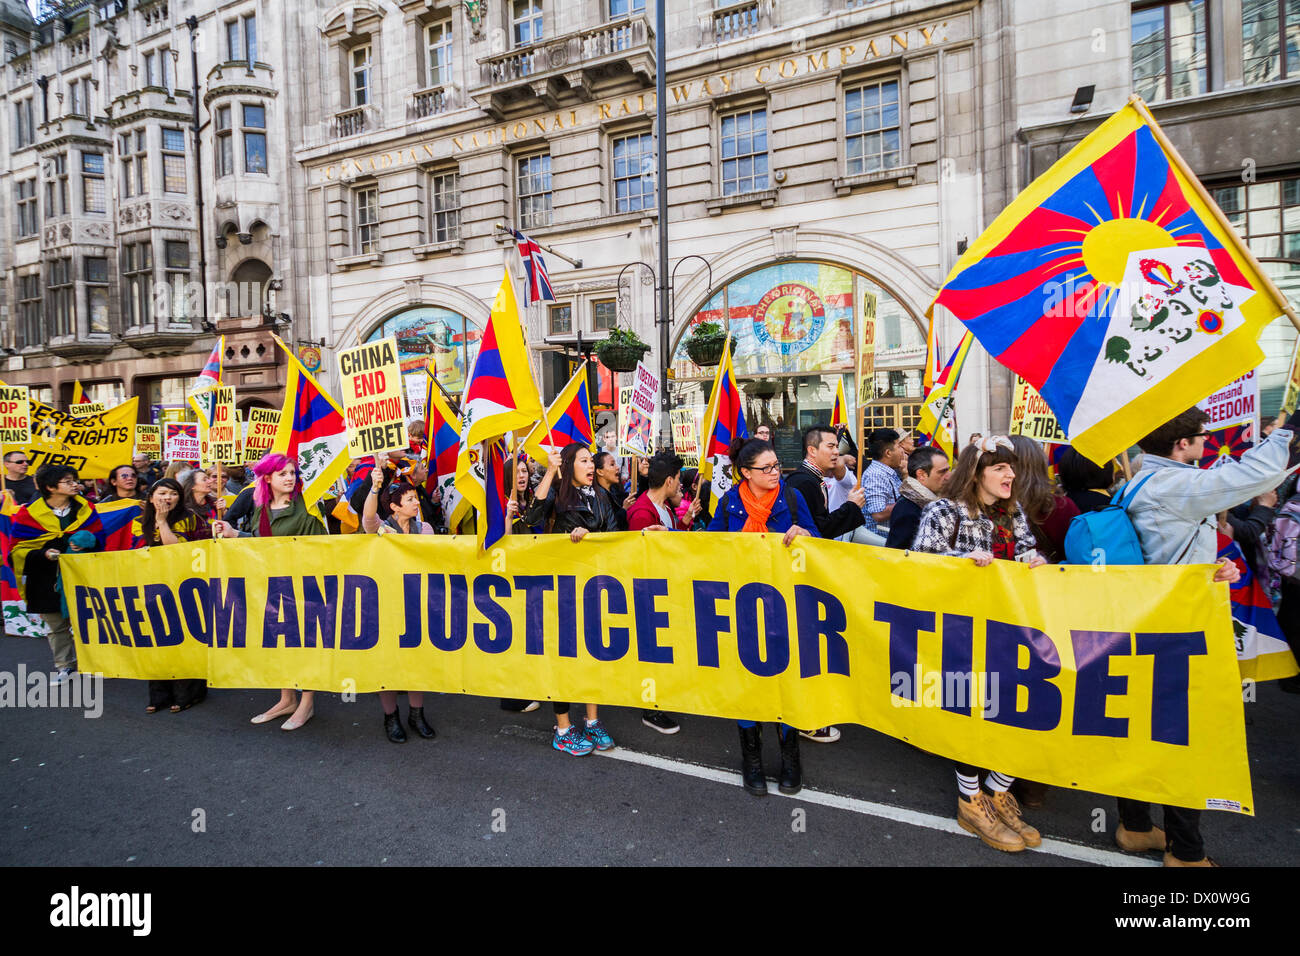 Annual Tibet protest march for Freedom from Chinese occupation in London - Stock Image